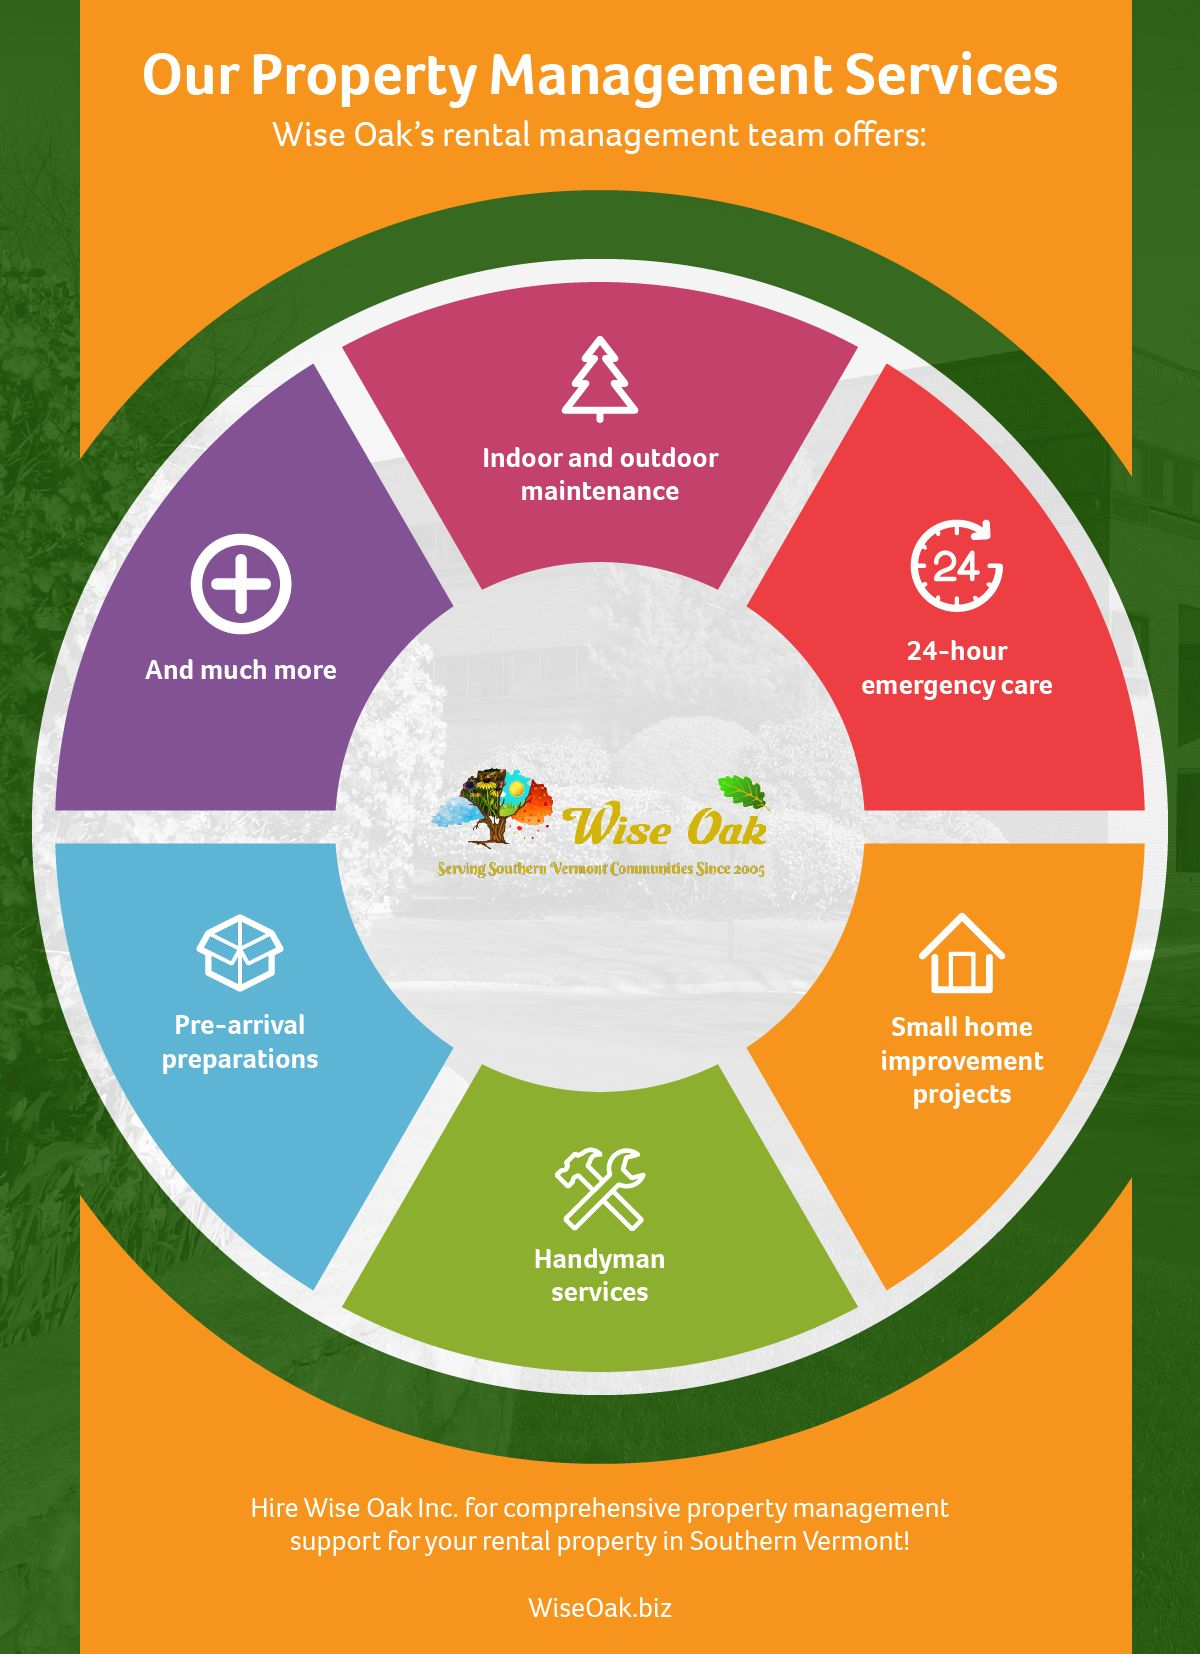 M28457 - Wise Oak_Our Property Management Services_Infographic-01.jpg